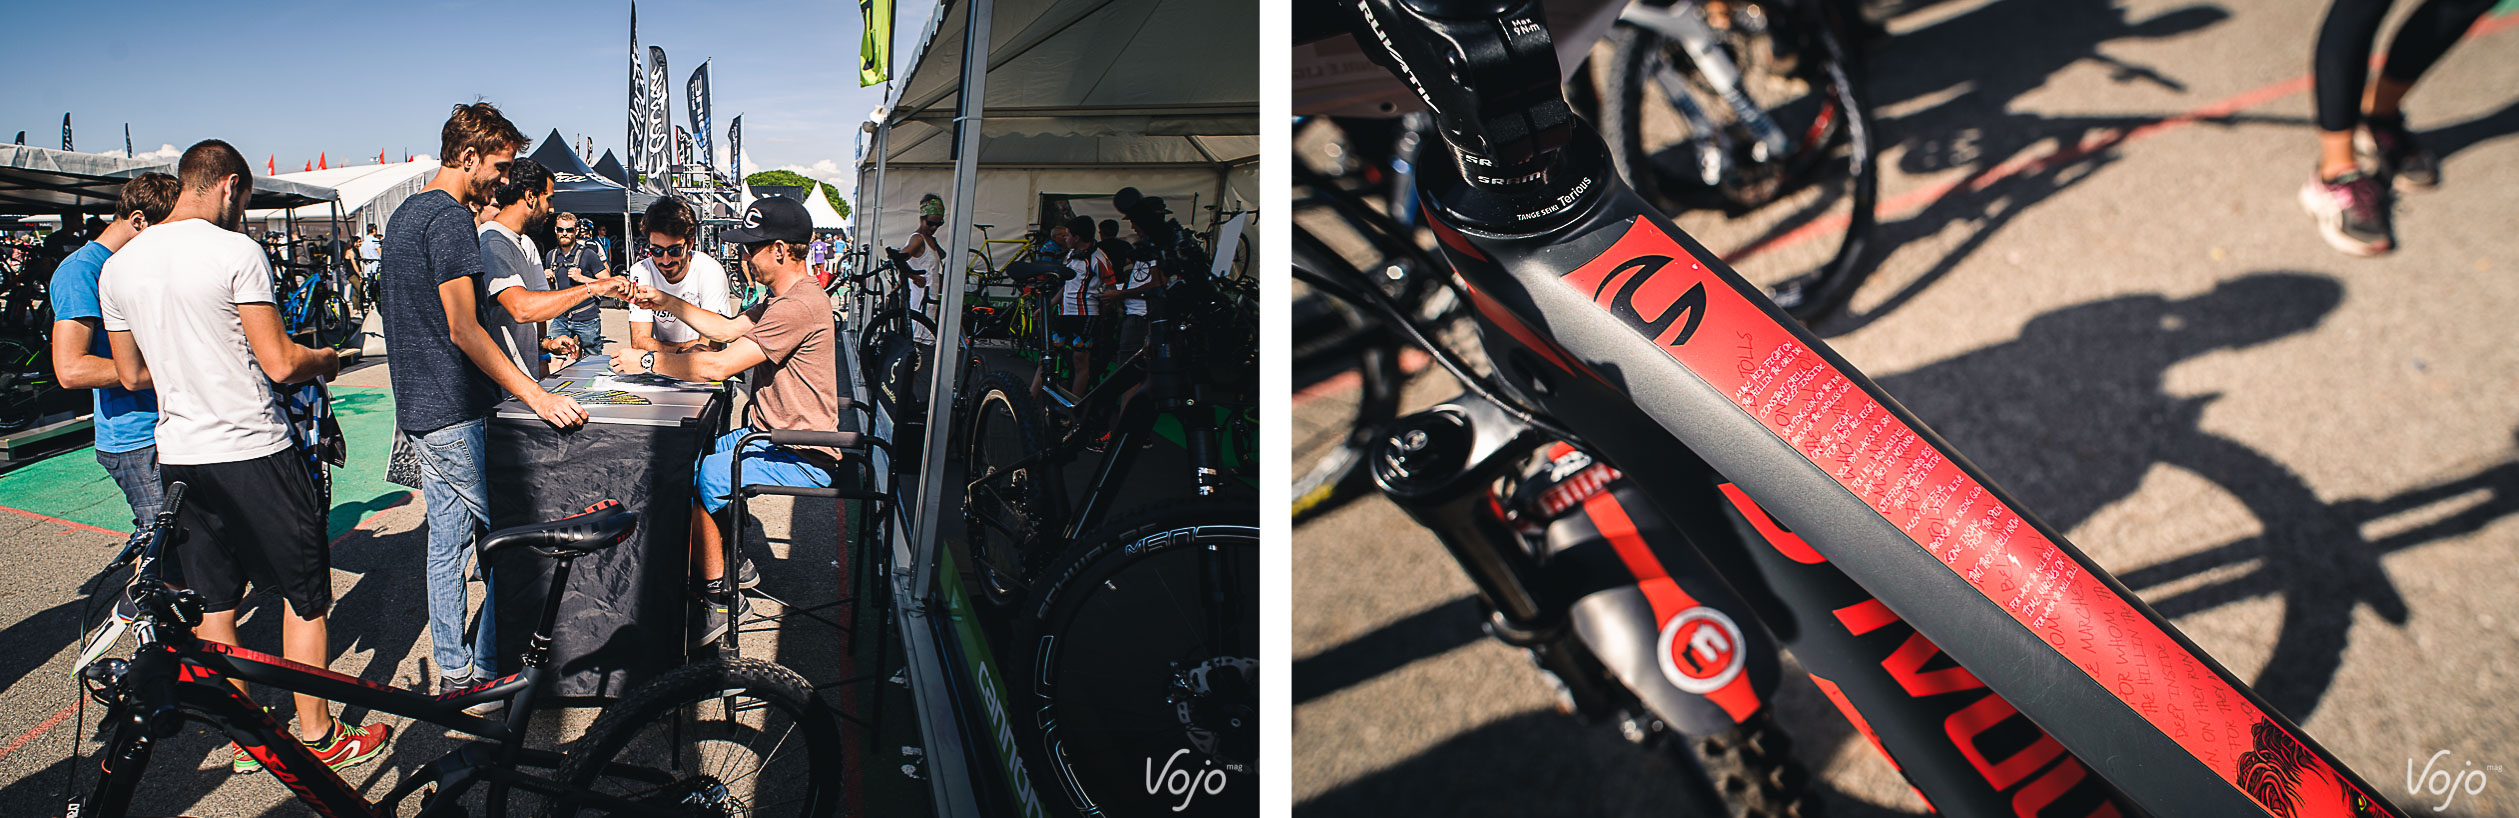 15-Salon_Roc_Azur_2015_Cannondale_Jerome_Clementz_Copyright_Vojomag